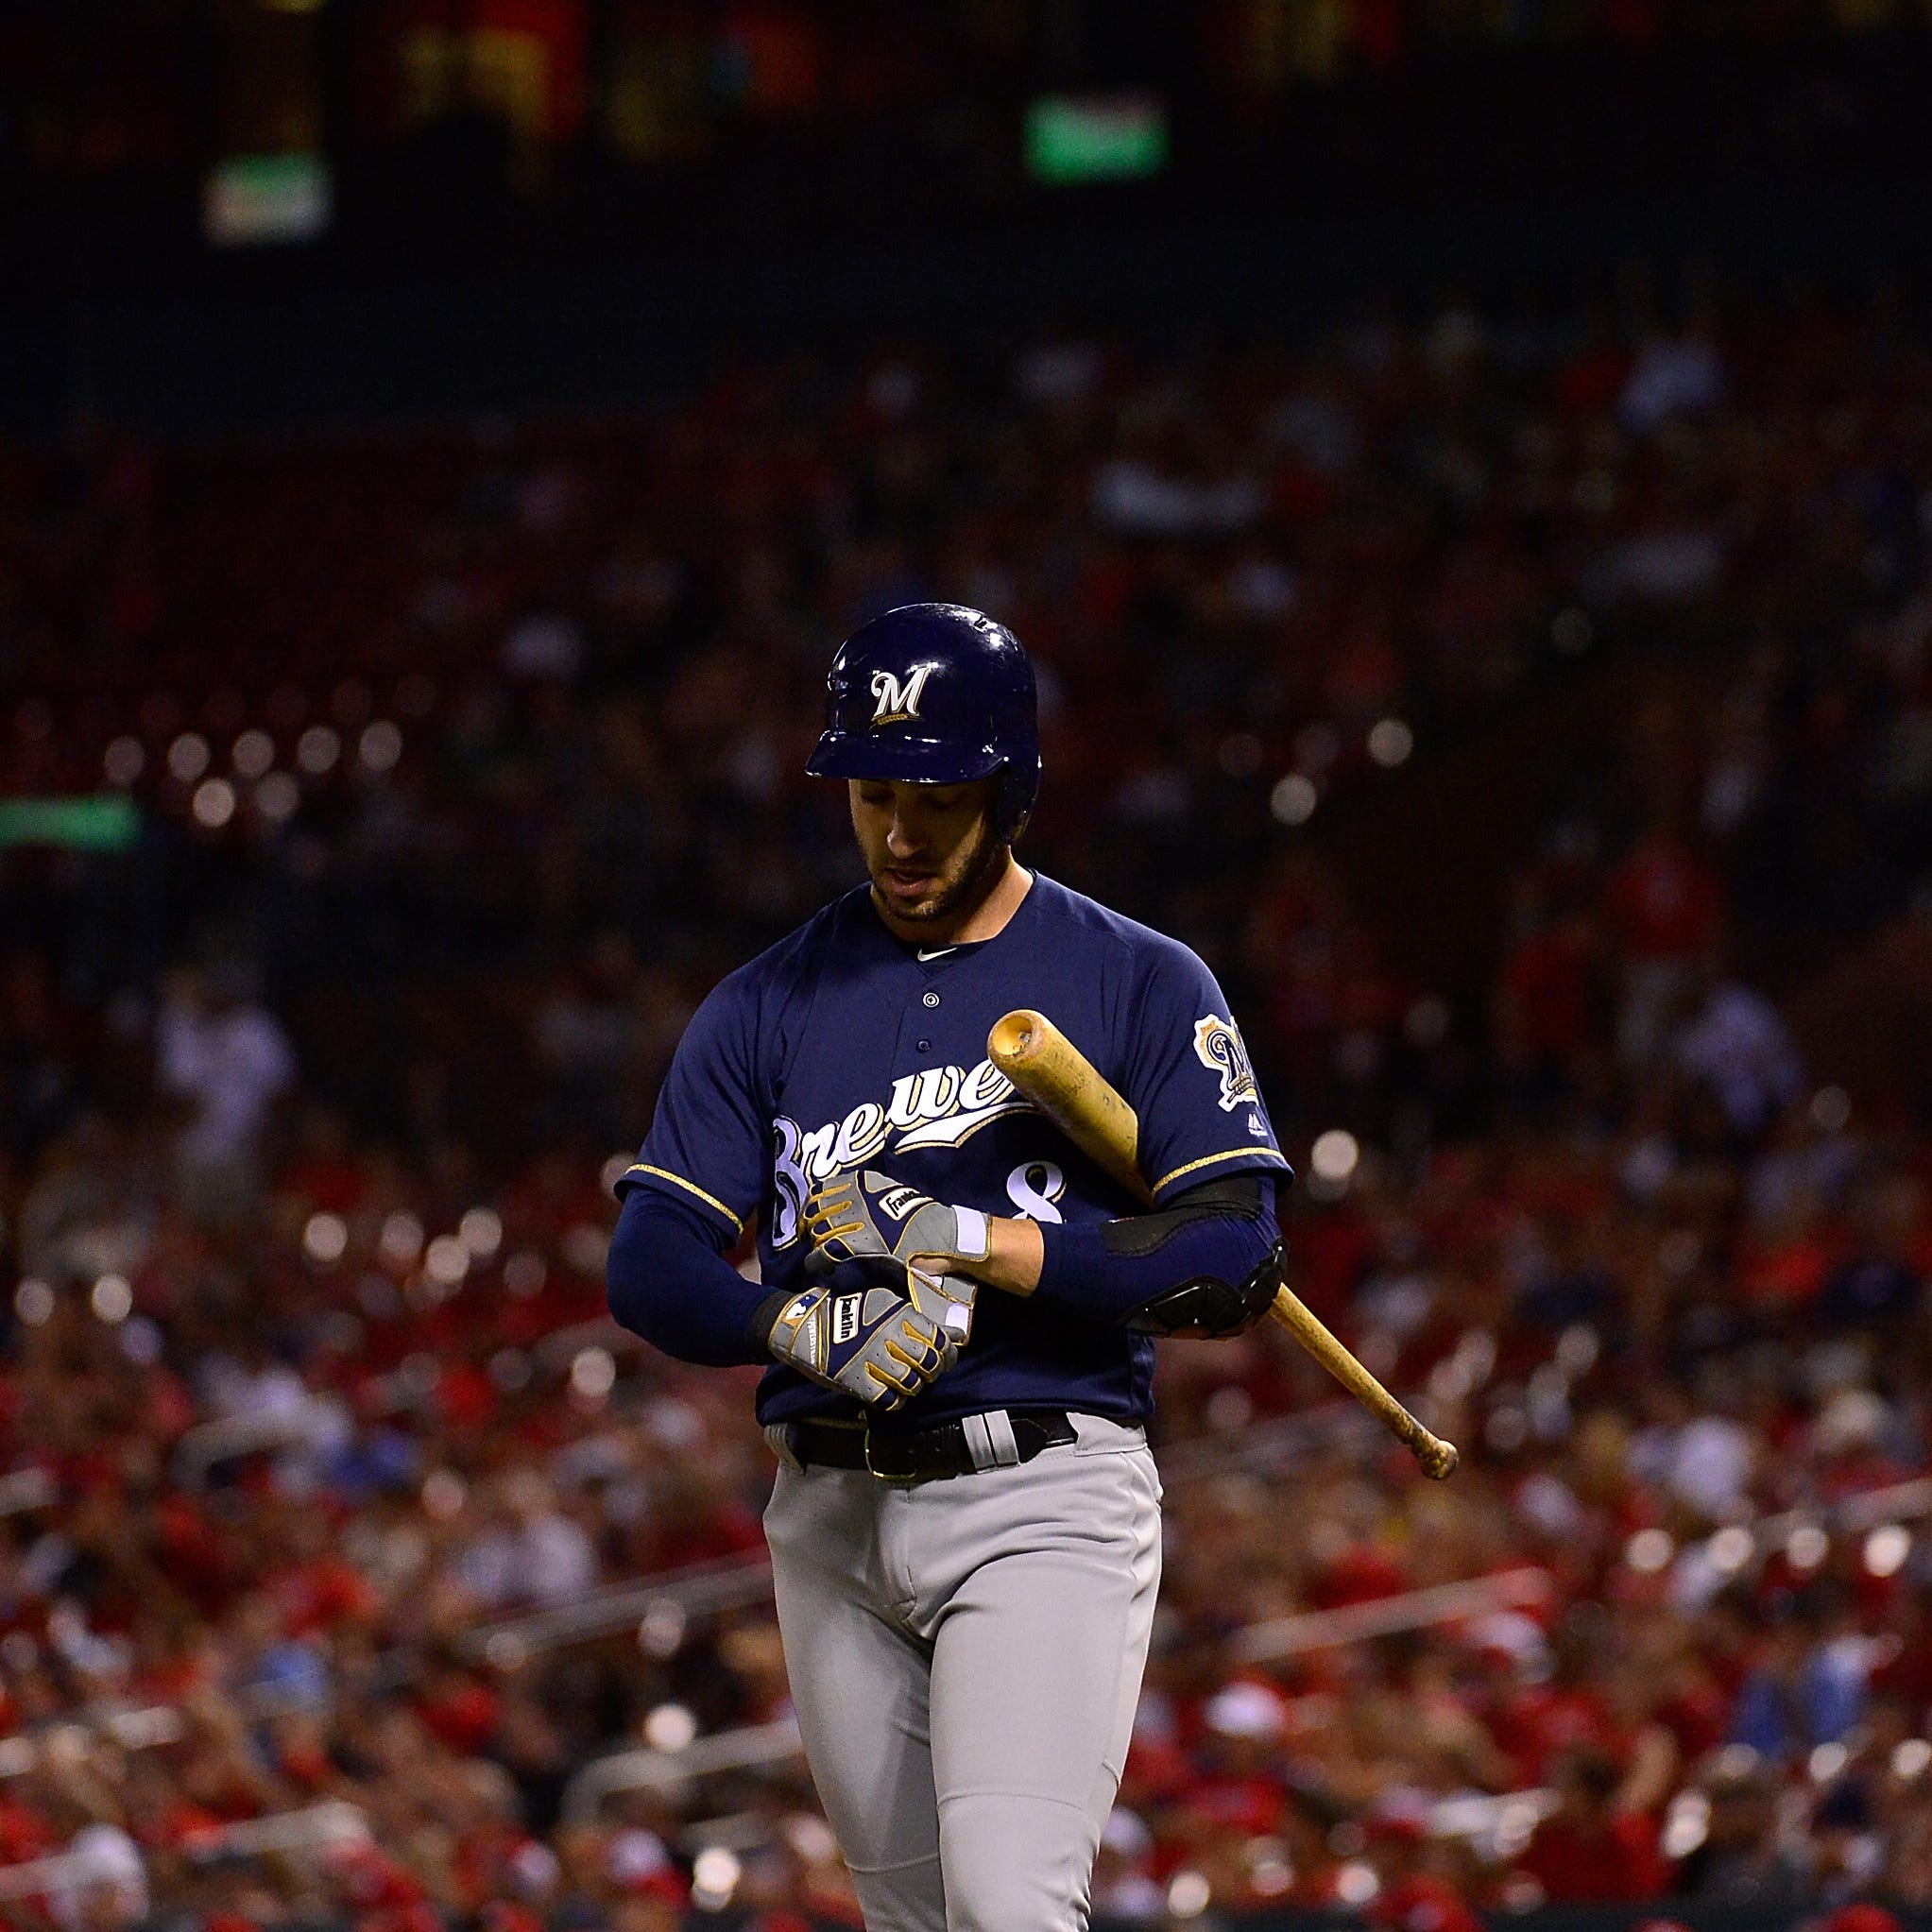 The Brewers will not get to the postseason playing like this. That much is quite evident.